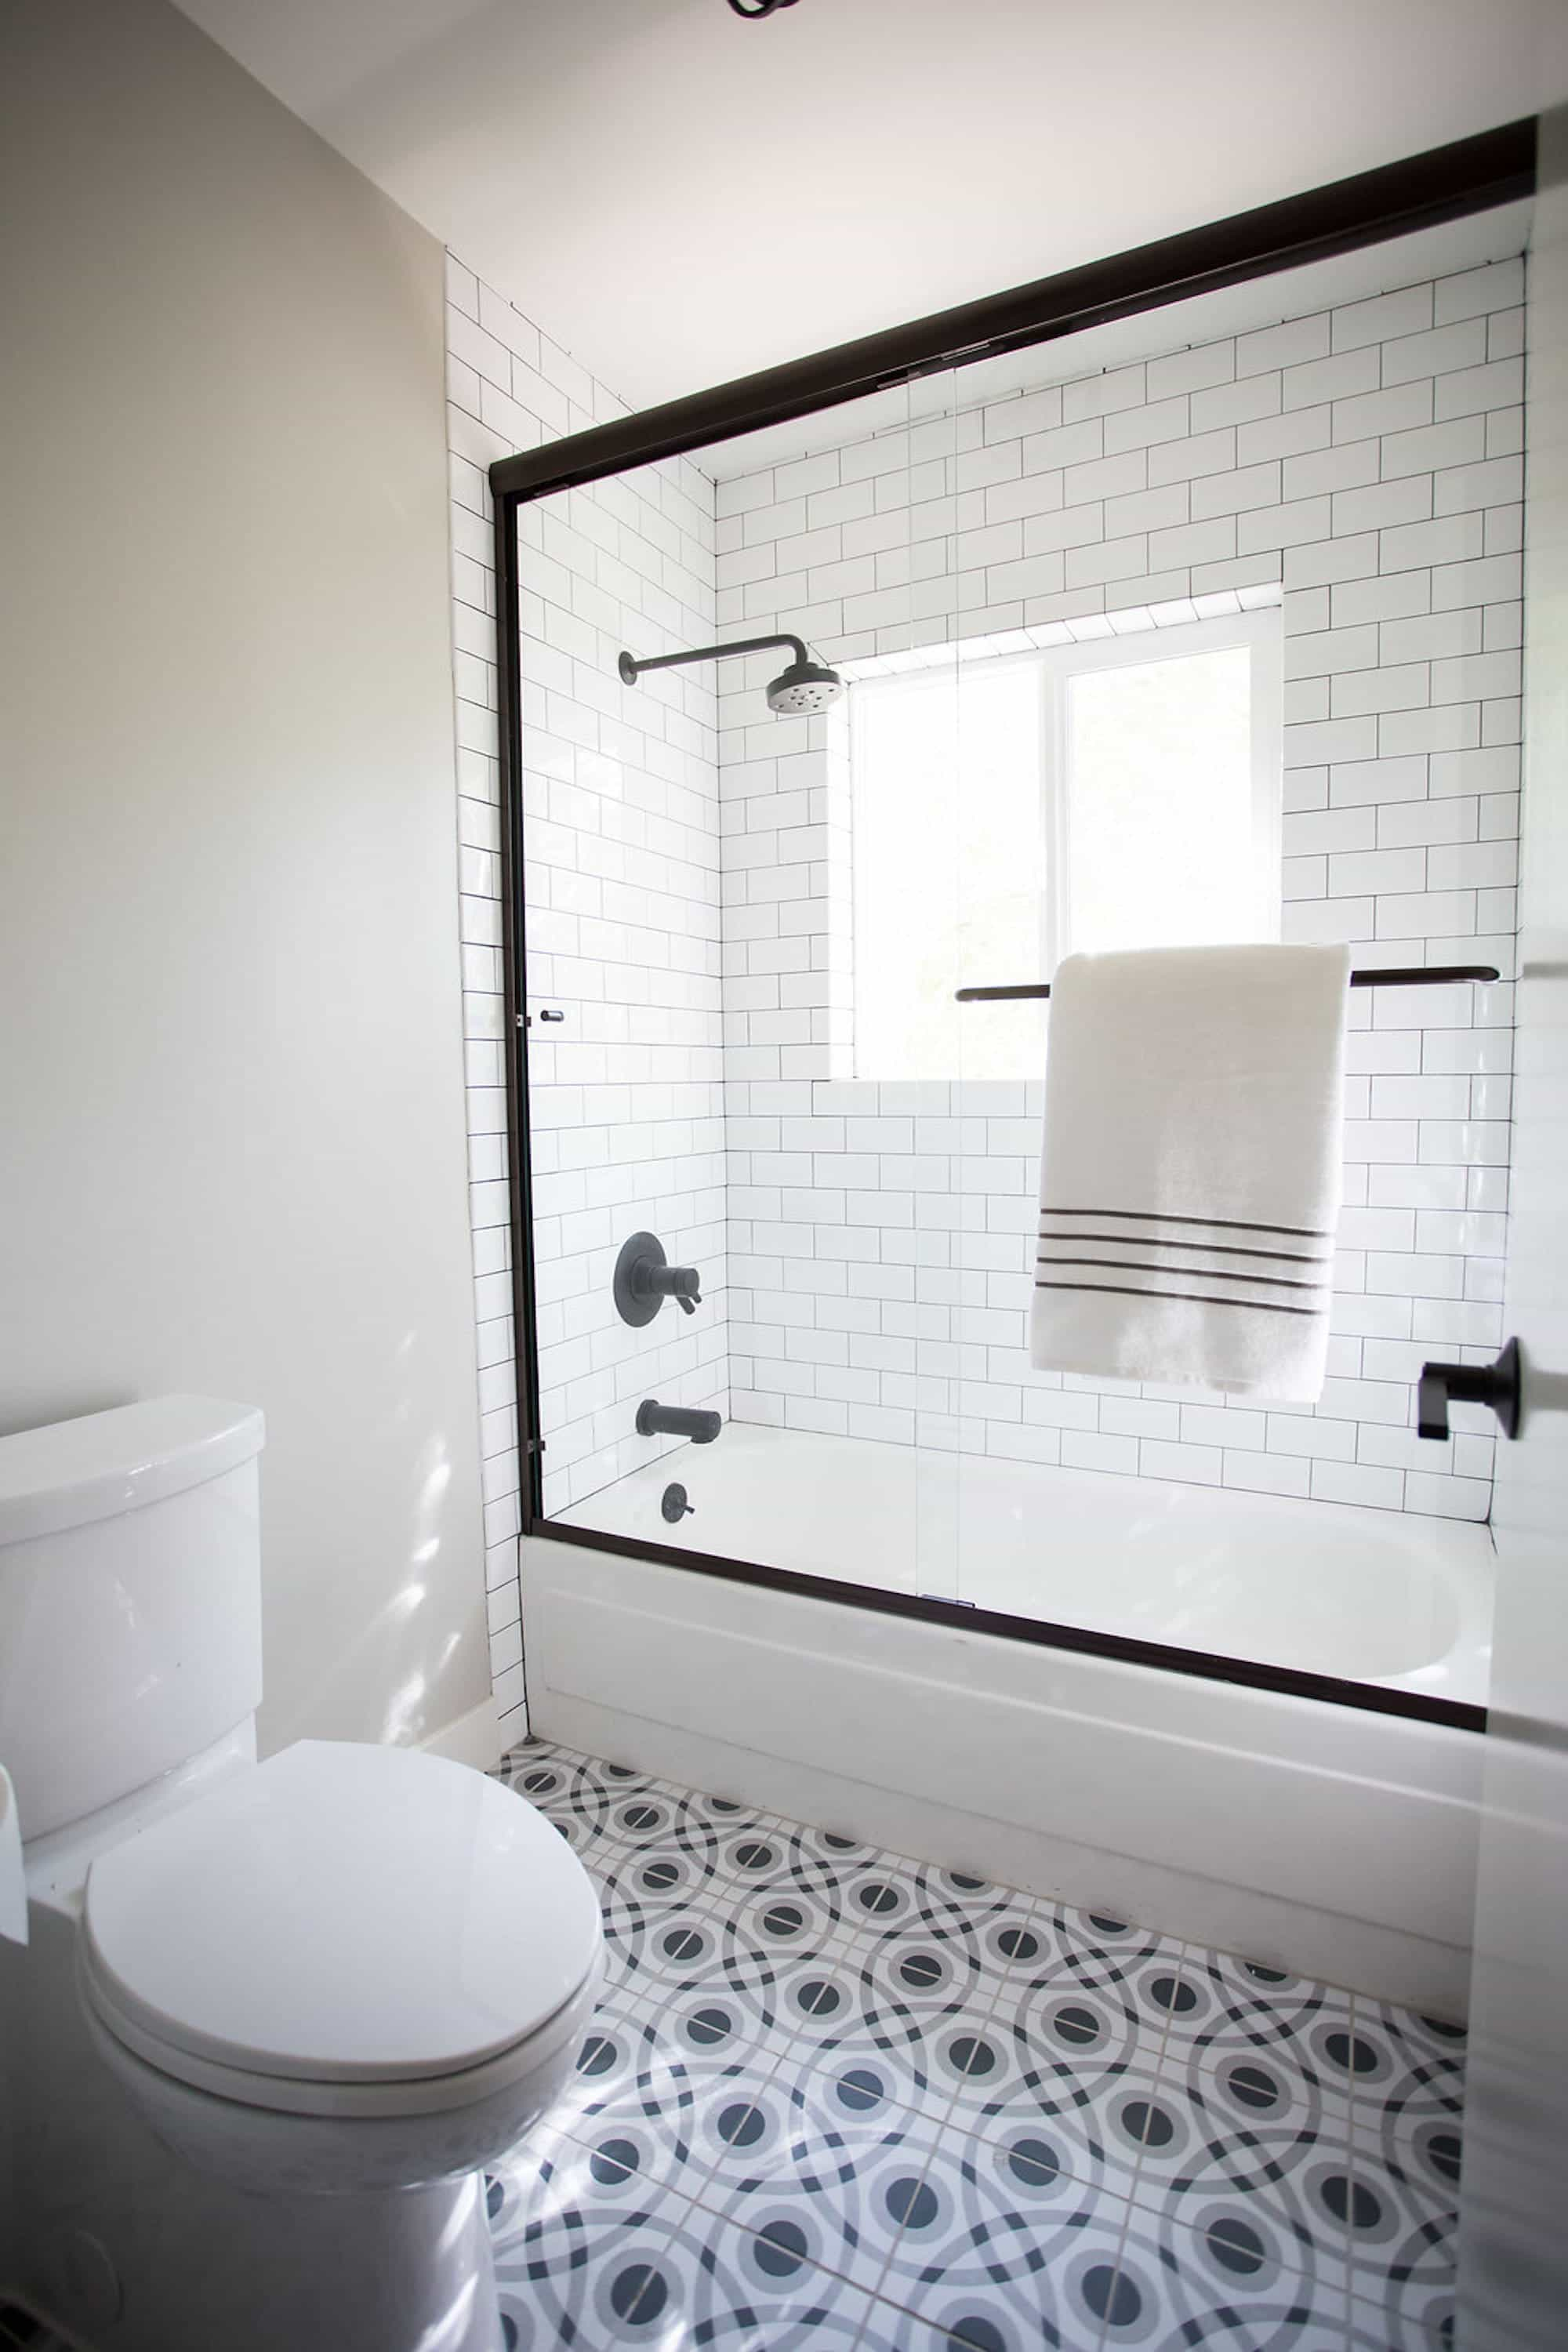 Black And White Bathroom With Patterned Floor Tile And Subway Tile Glass Door Shower (Photo 10 of 16)